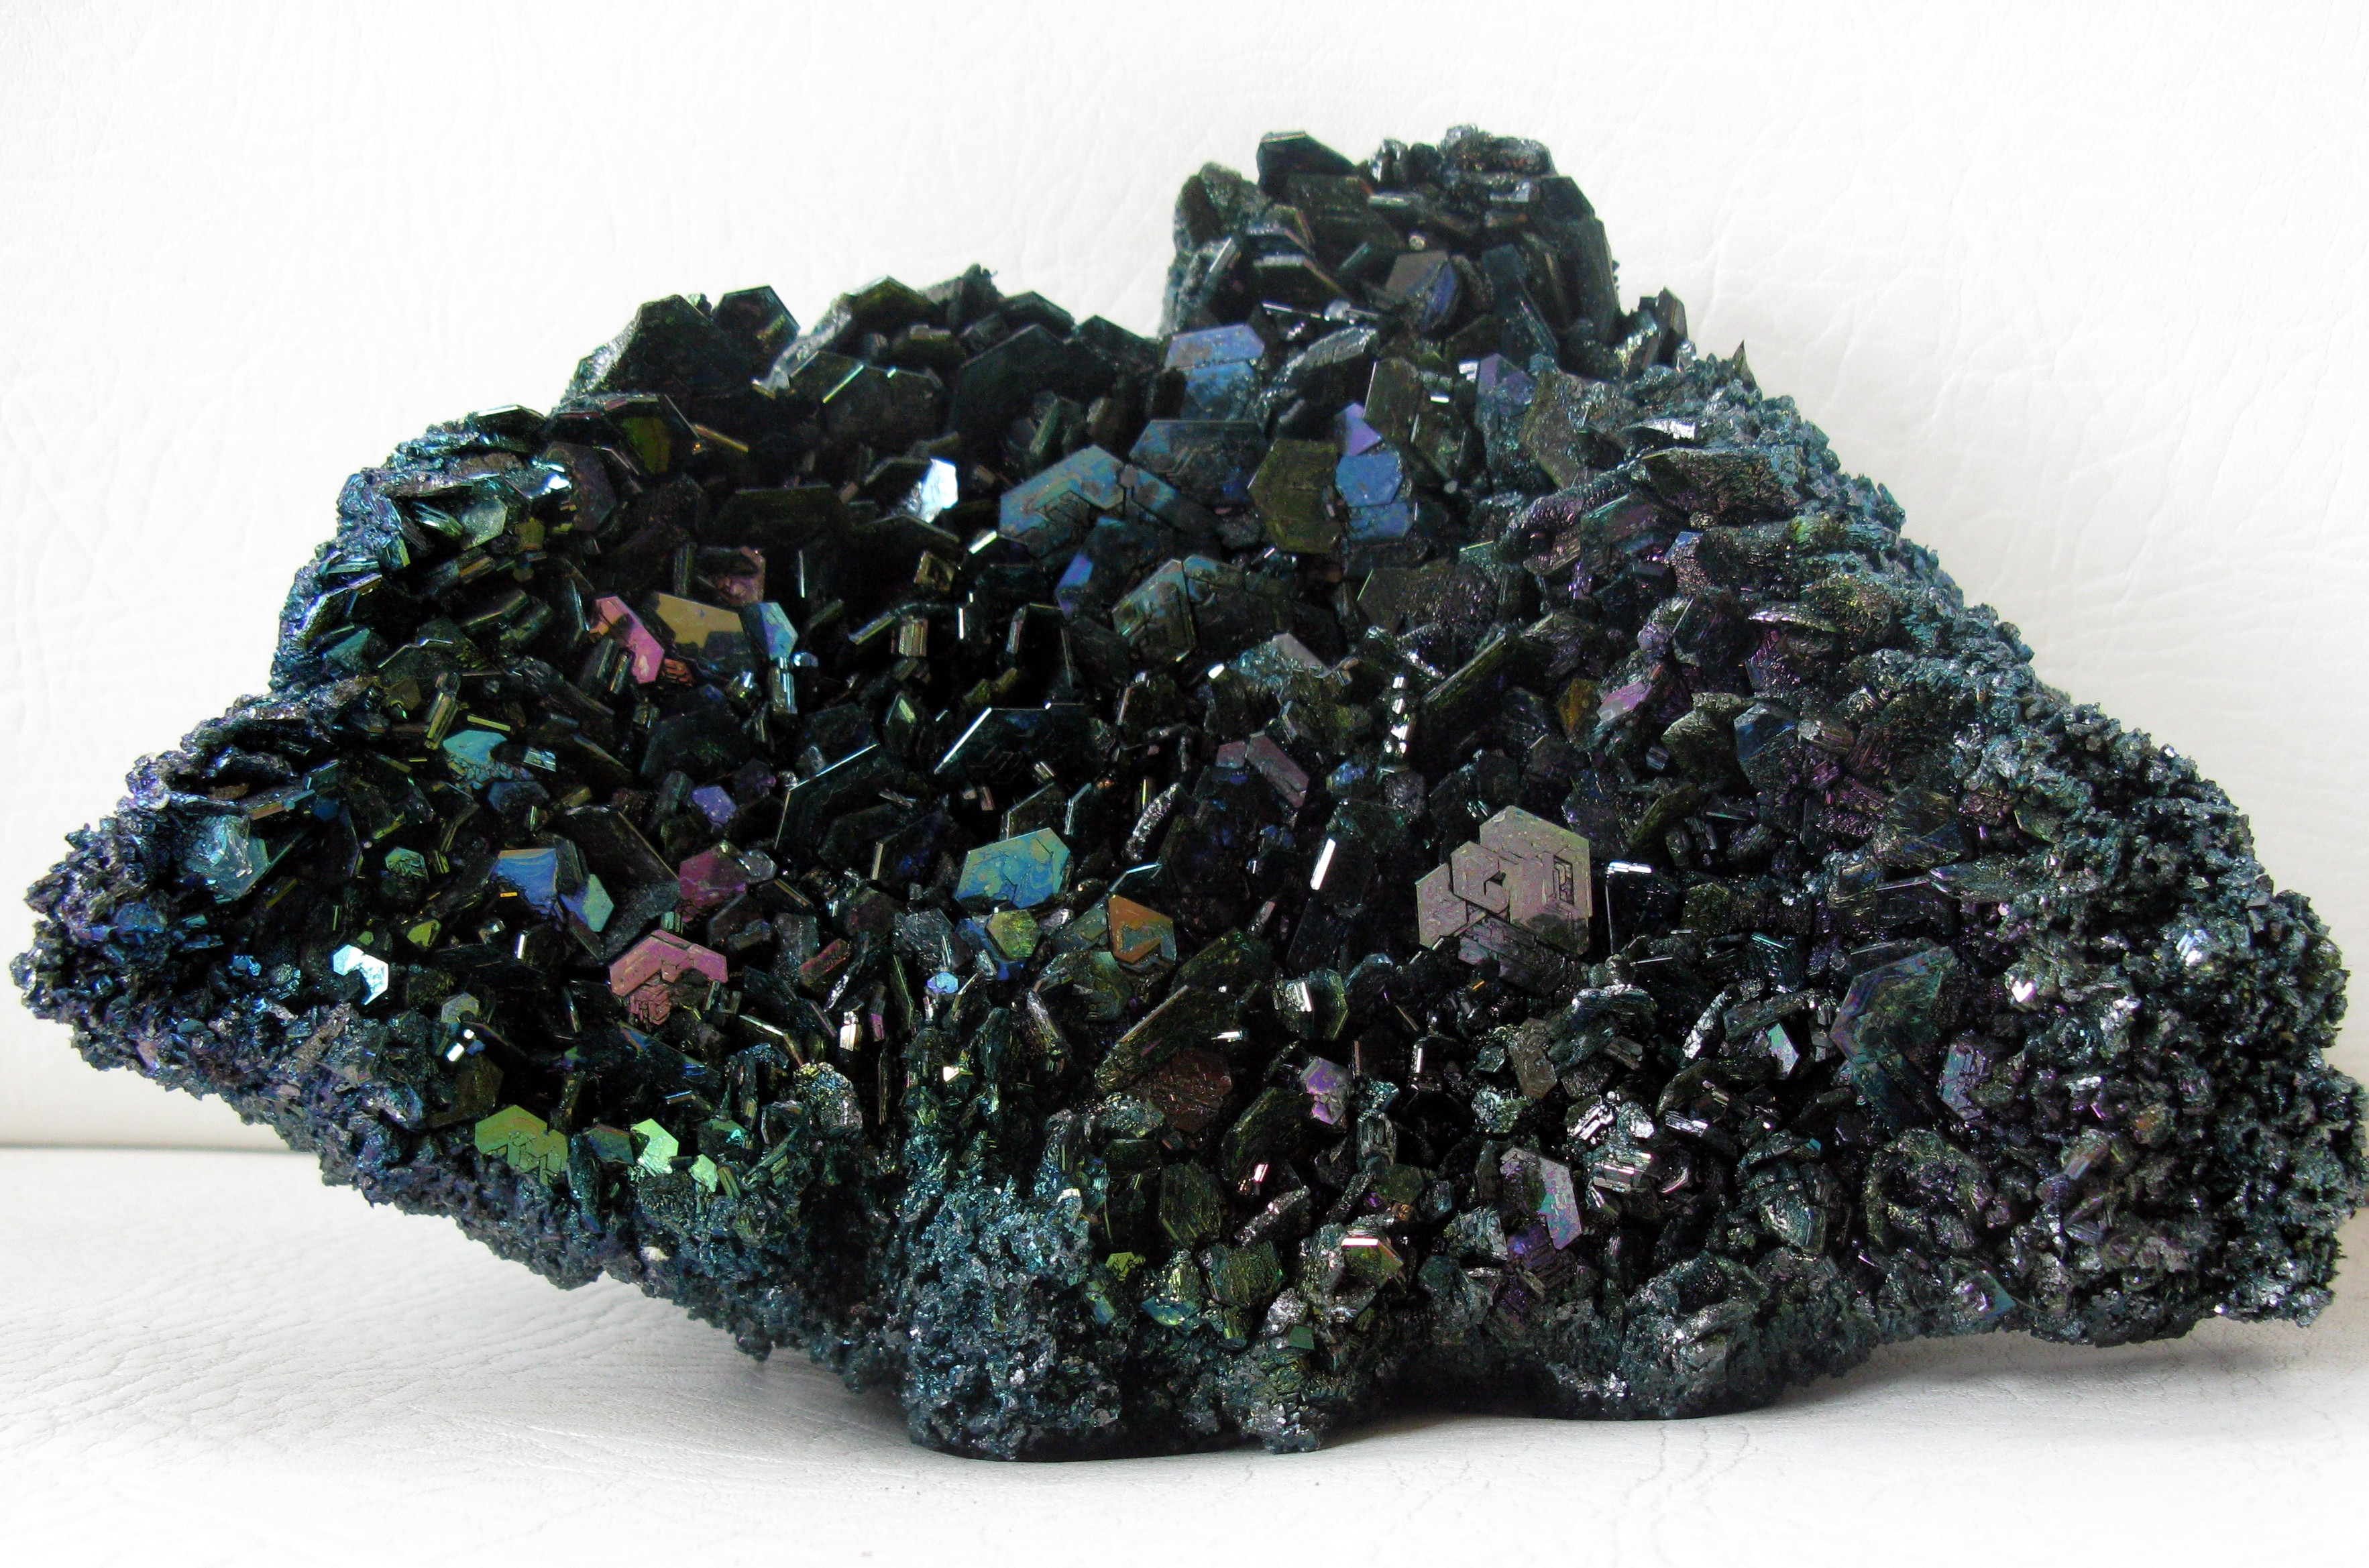 What Natural Stones Are In California Wiki